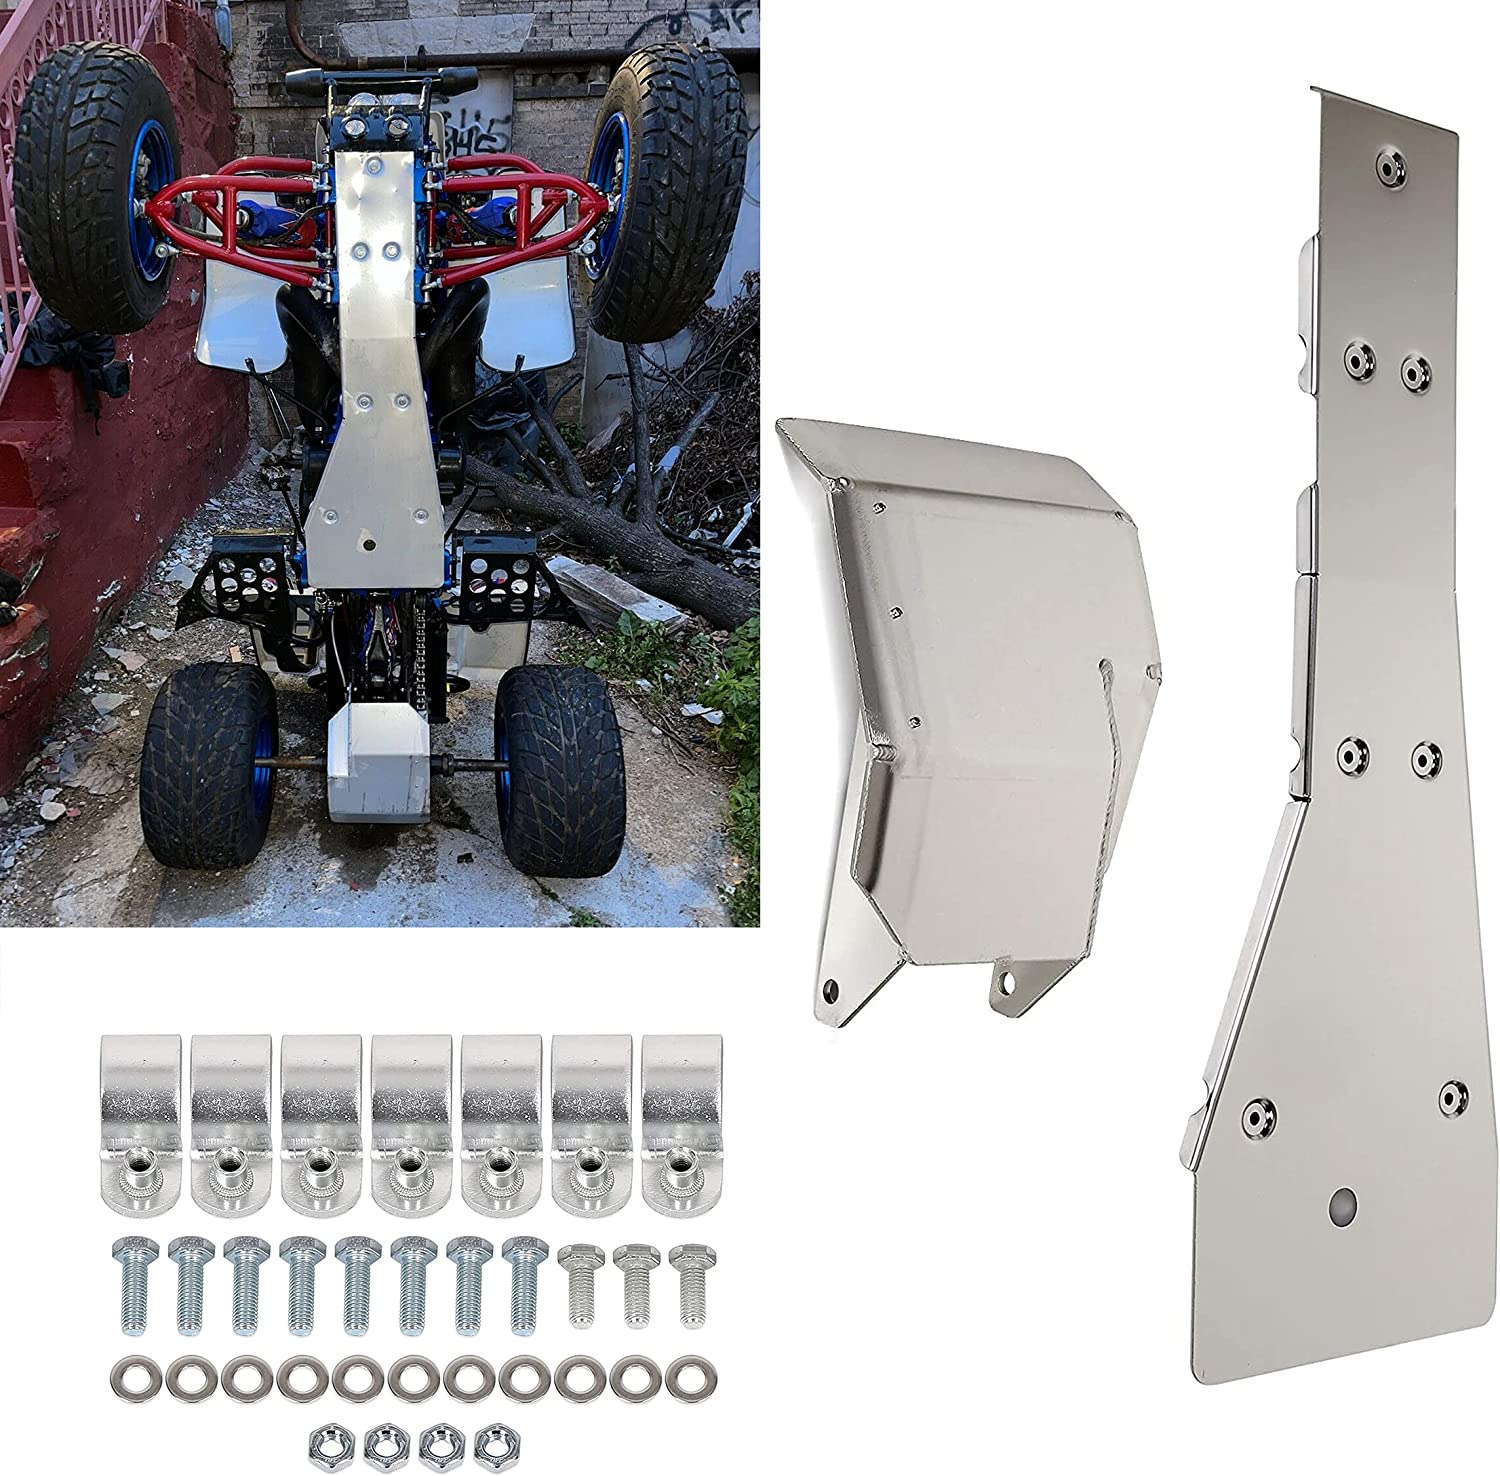 KUAFU Swing Arm Skid Plate Glide Chassis Full 2021 Compatible Guard Be super welcome